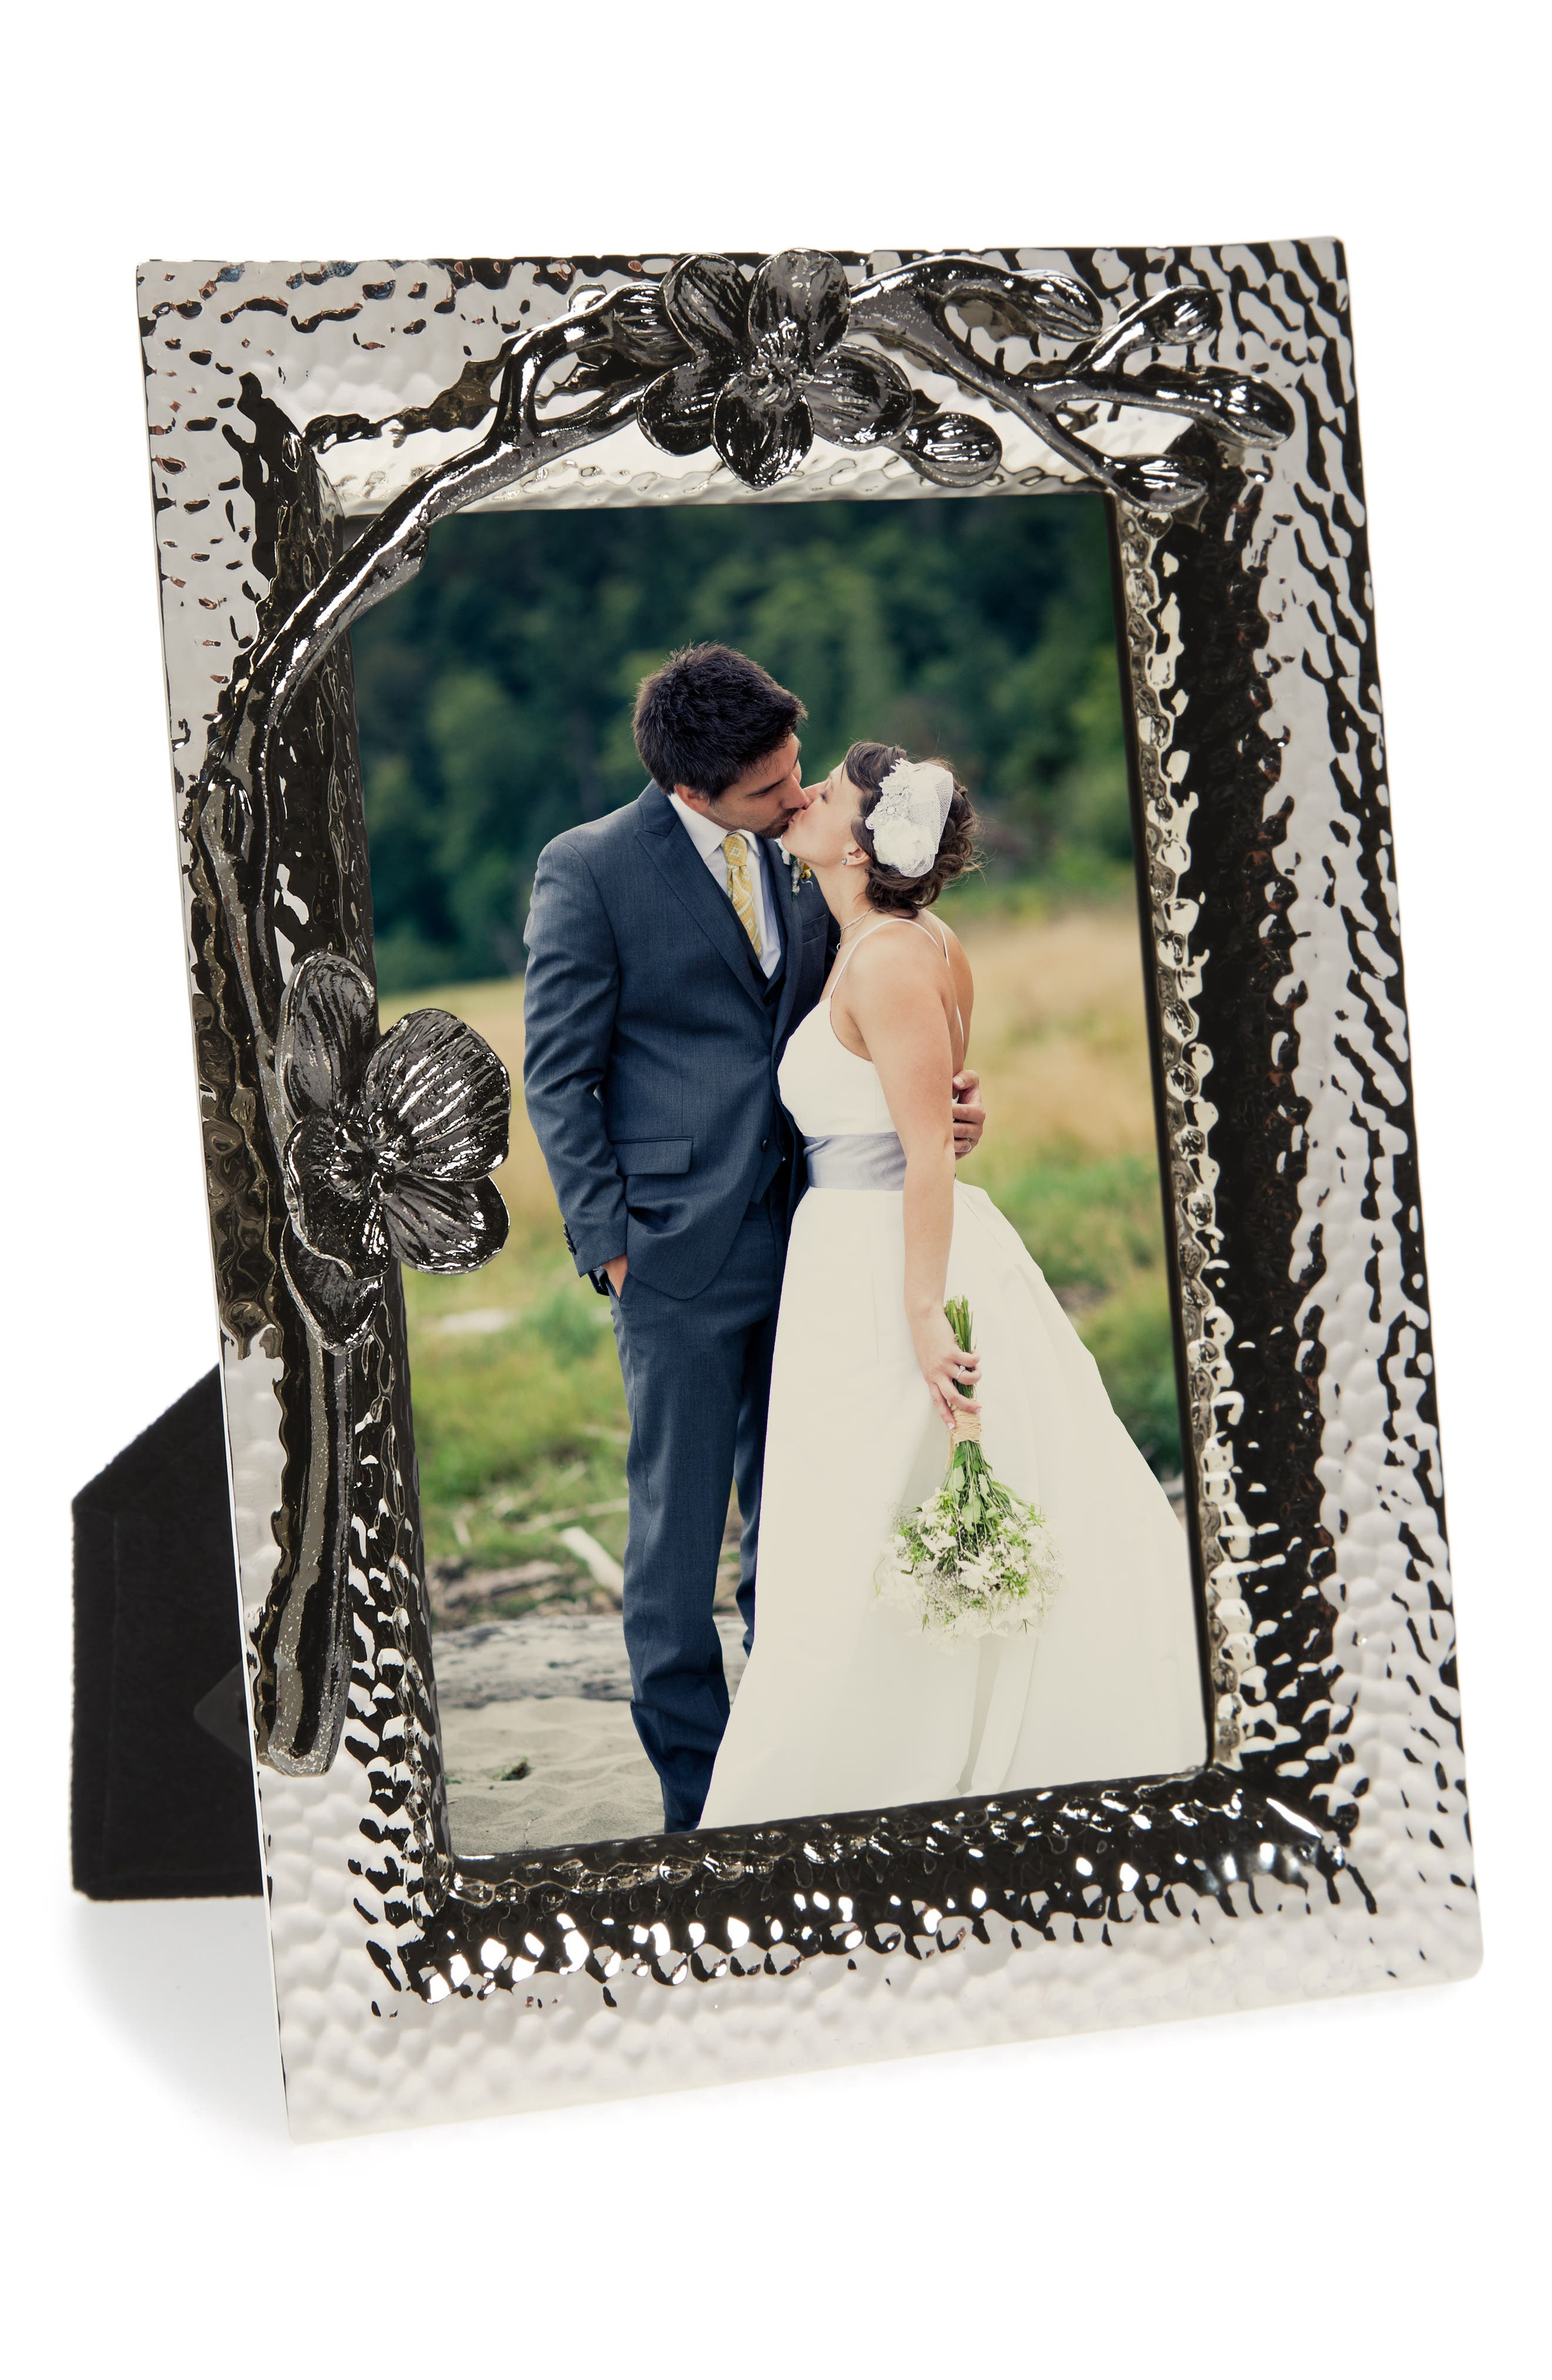 Main Image - Michael Aram Black Orchid Picture Frame